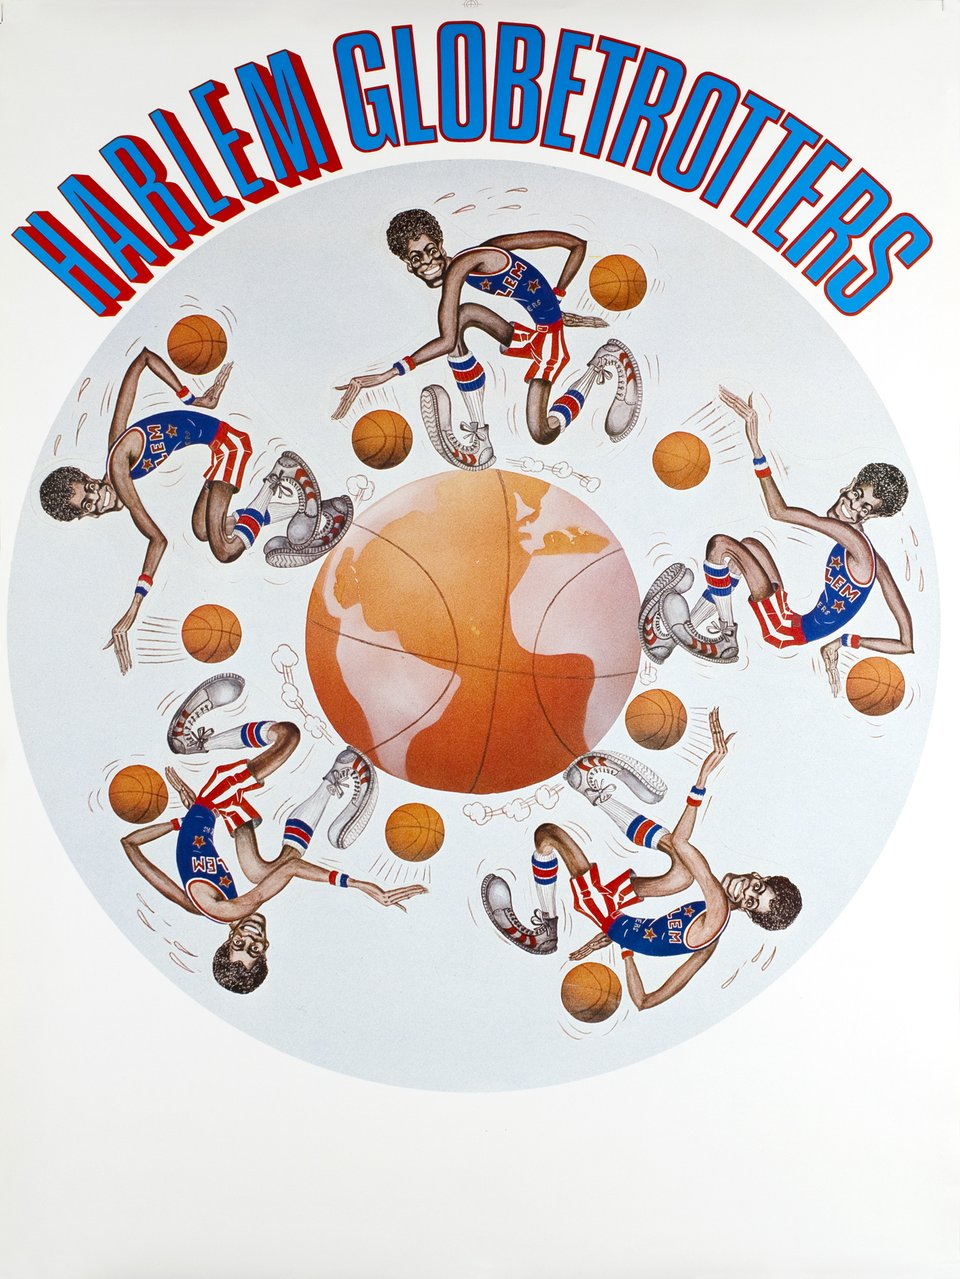 Harlem Globetrotters – Affiche ancienne –  ANONYME – 1985